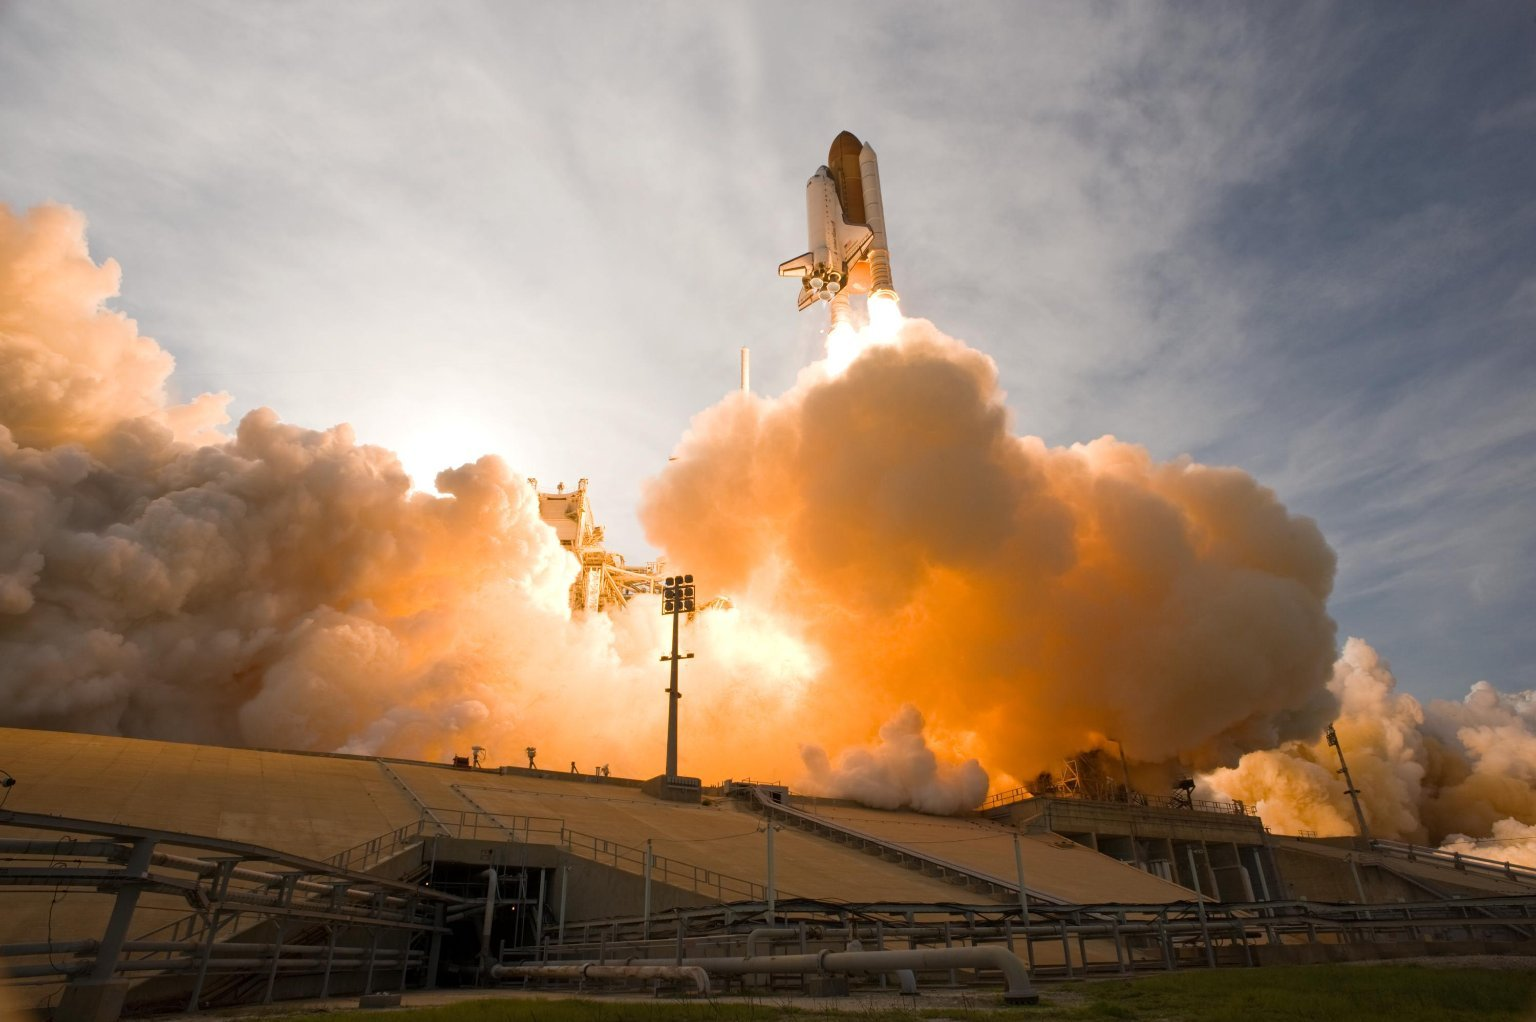 SpaceX manned mission scheduled for June 2019 and Boeing's in August